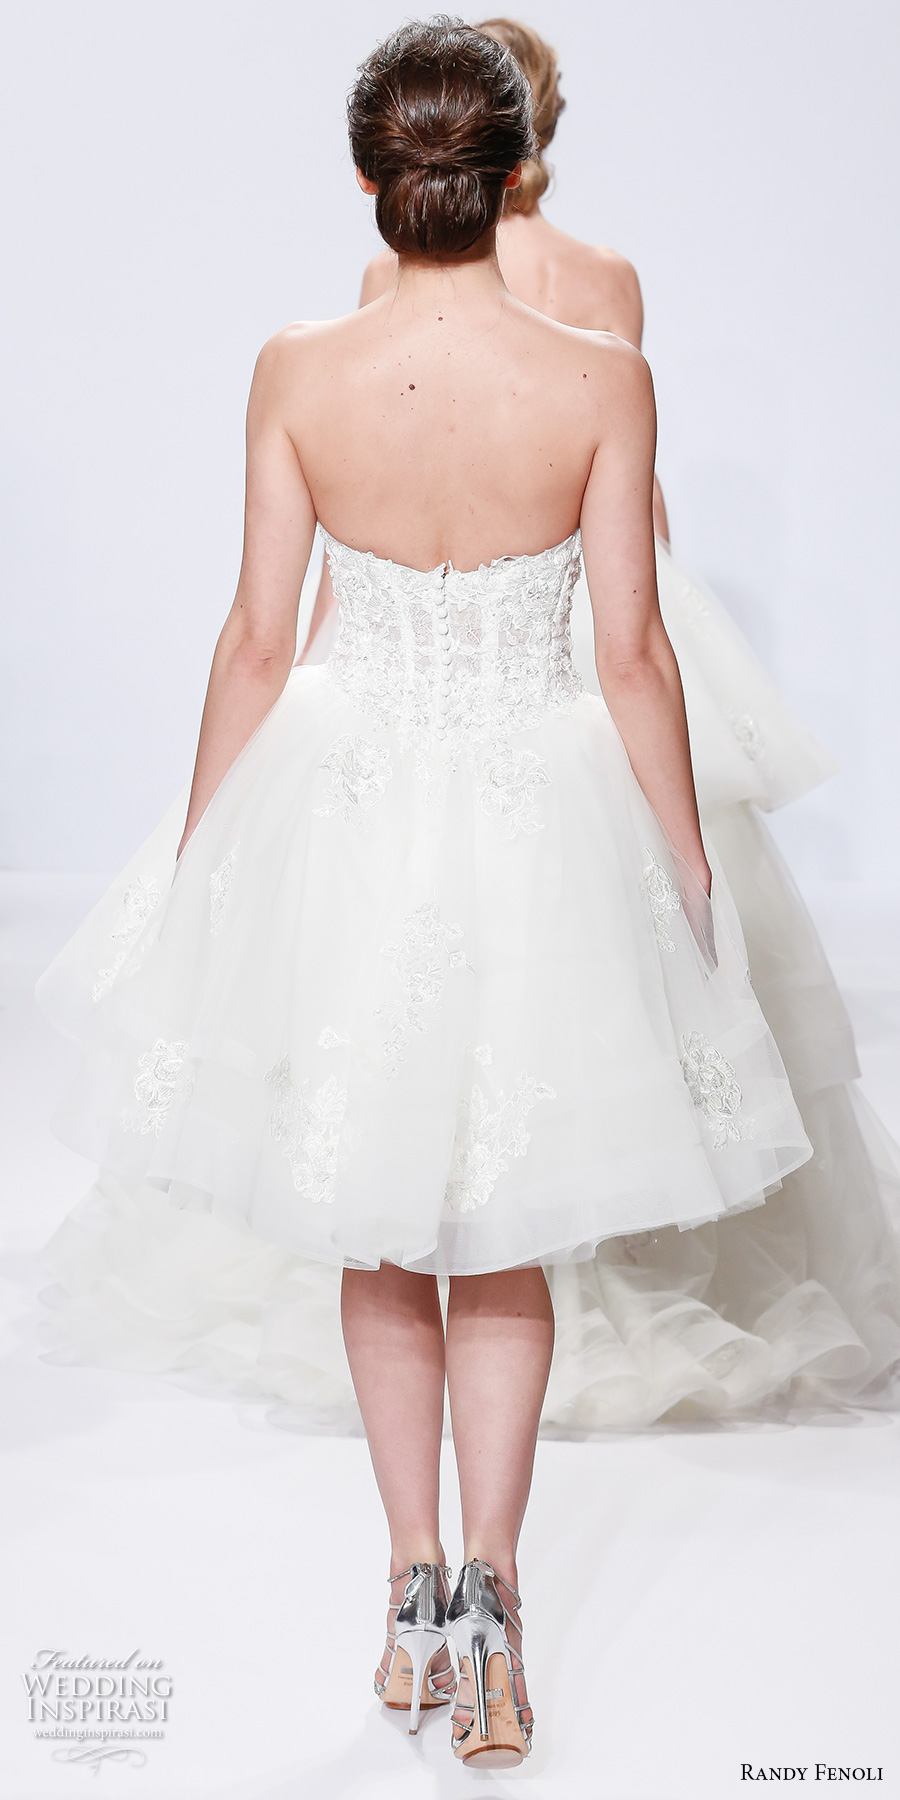 randy fenoli spring 2018 bridal strapless sweetheart neckline heavily embellished bodice bustier romantic above the knee short wedding dress (25) bv